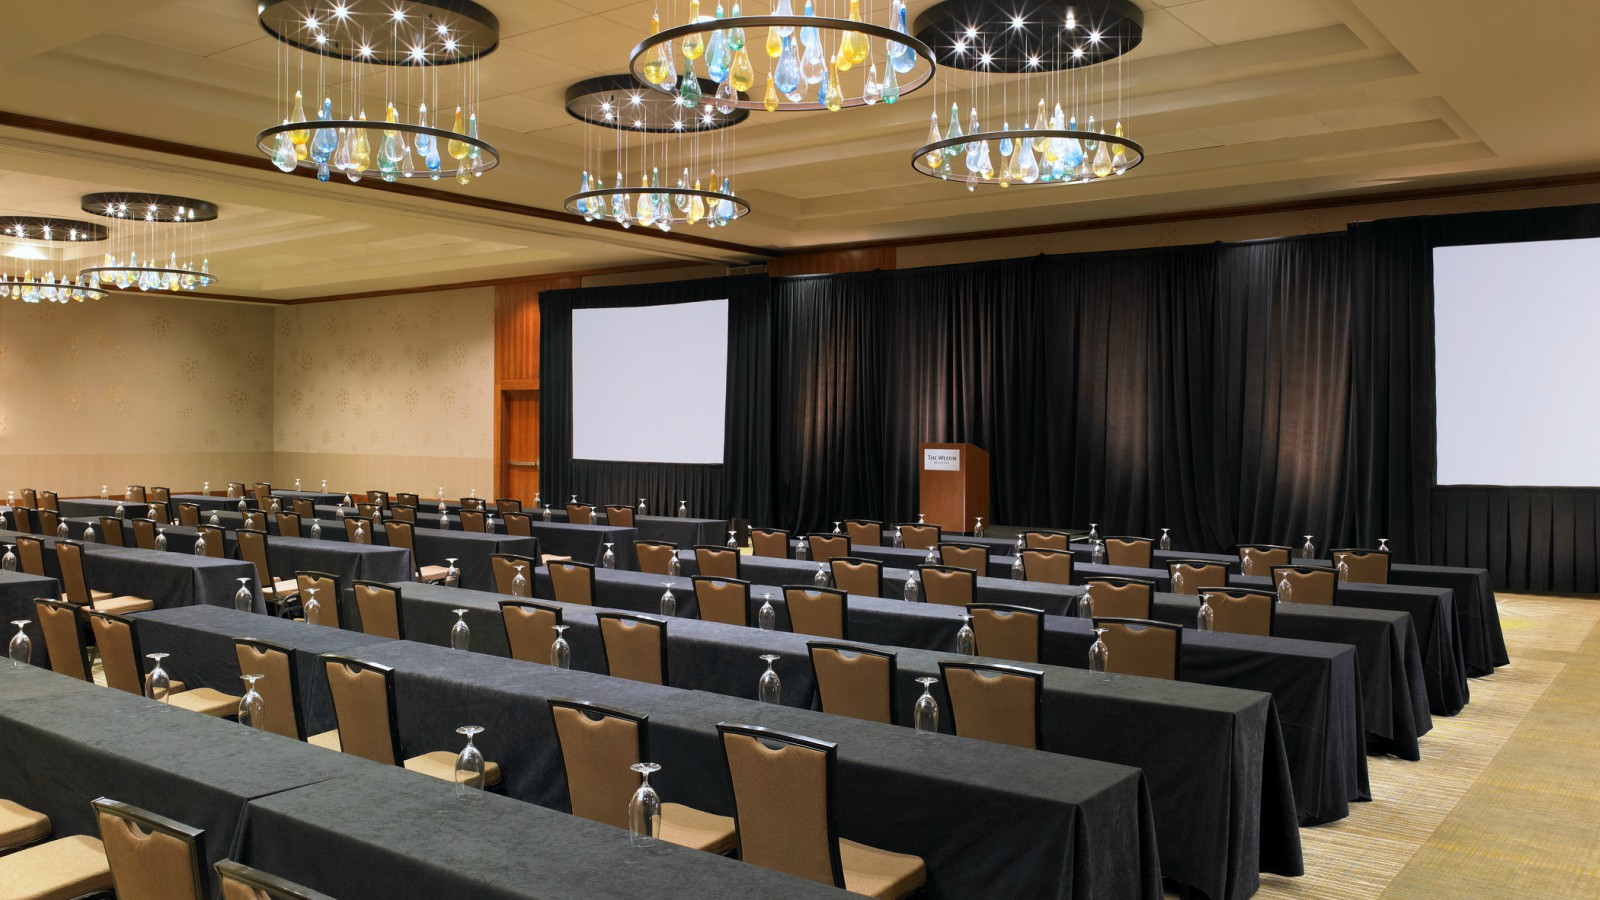 Bellevue Meeting Space - Grand Ballroom